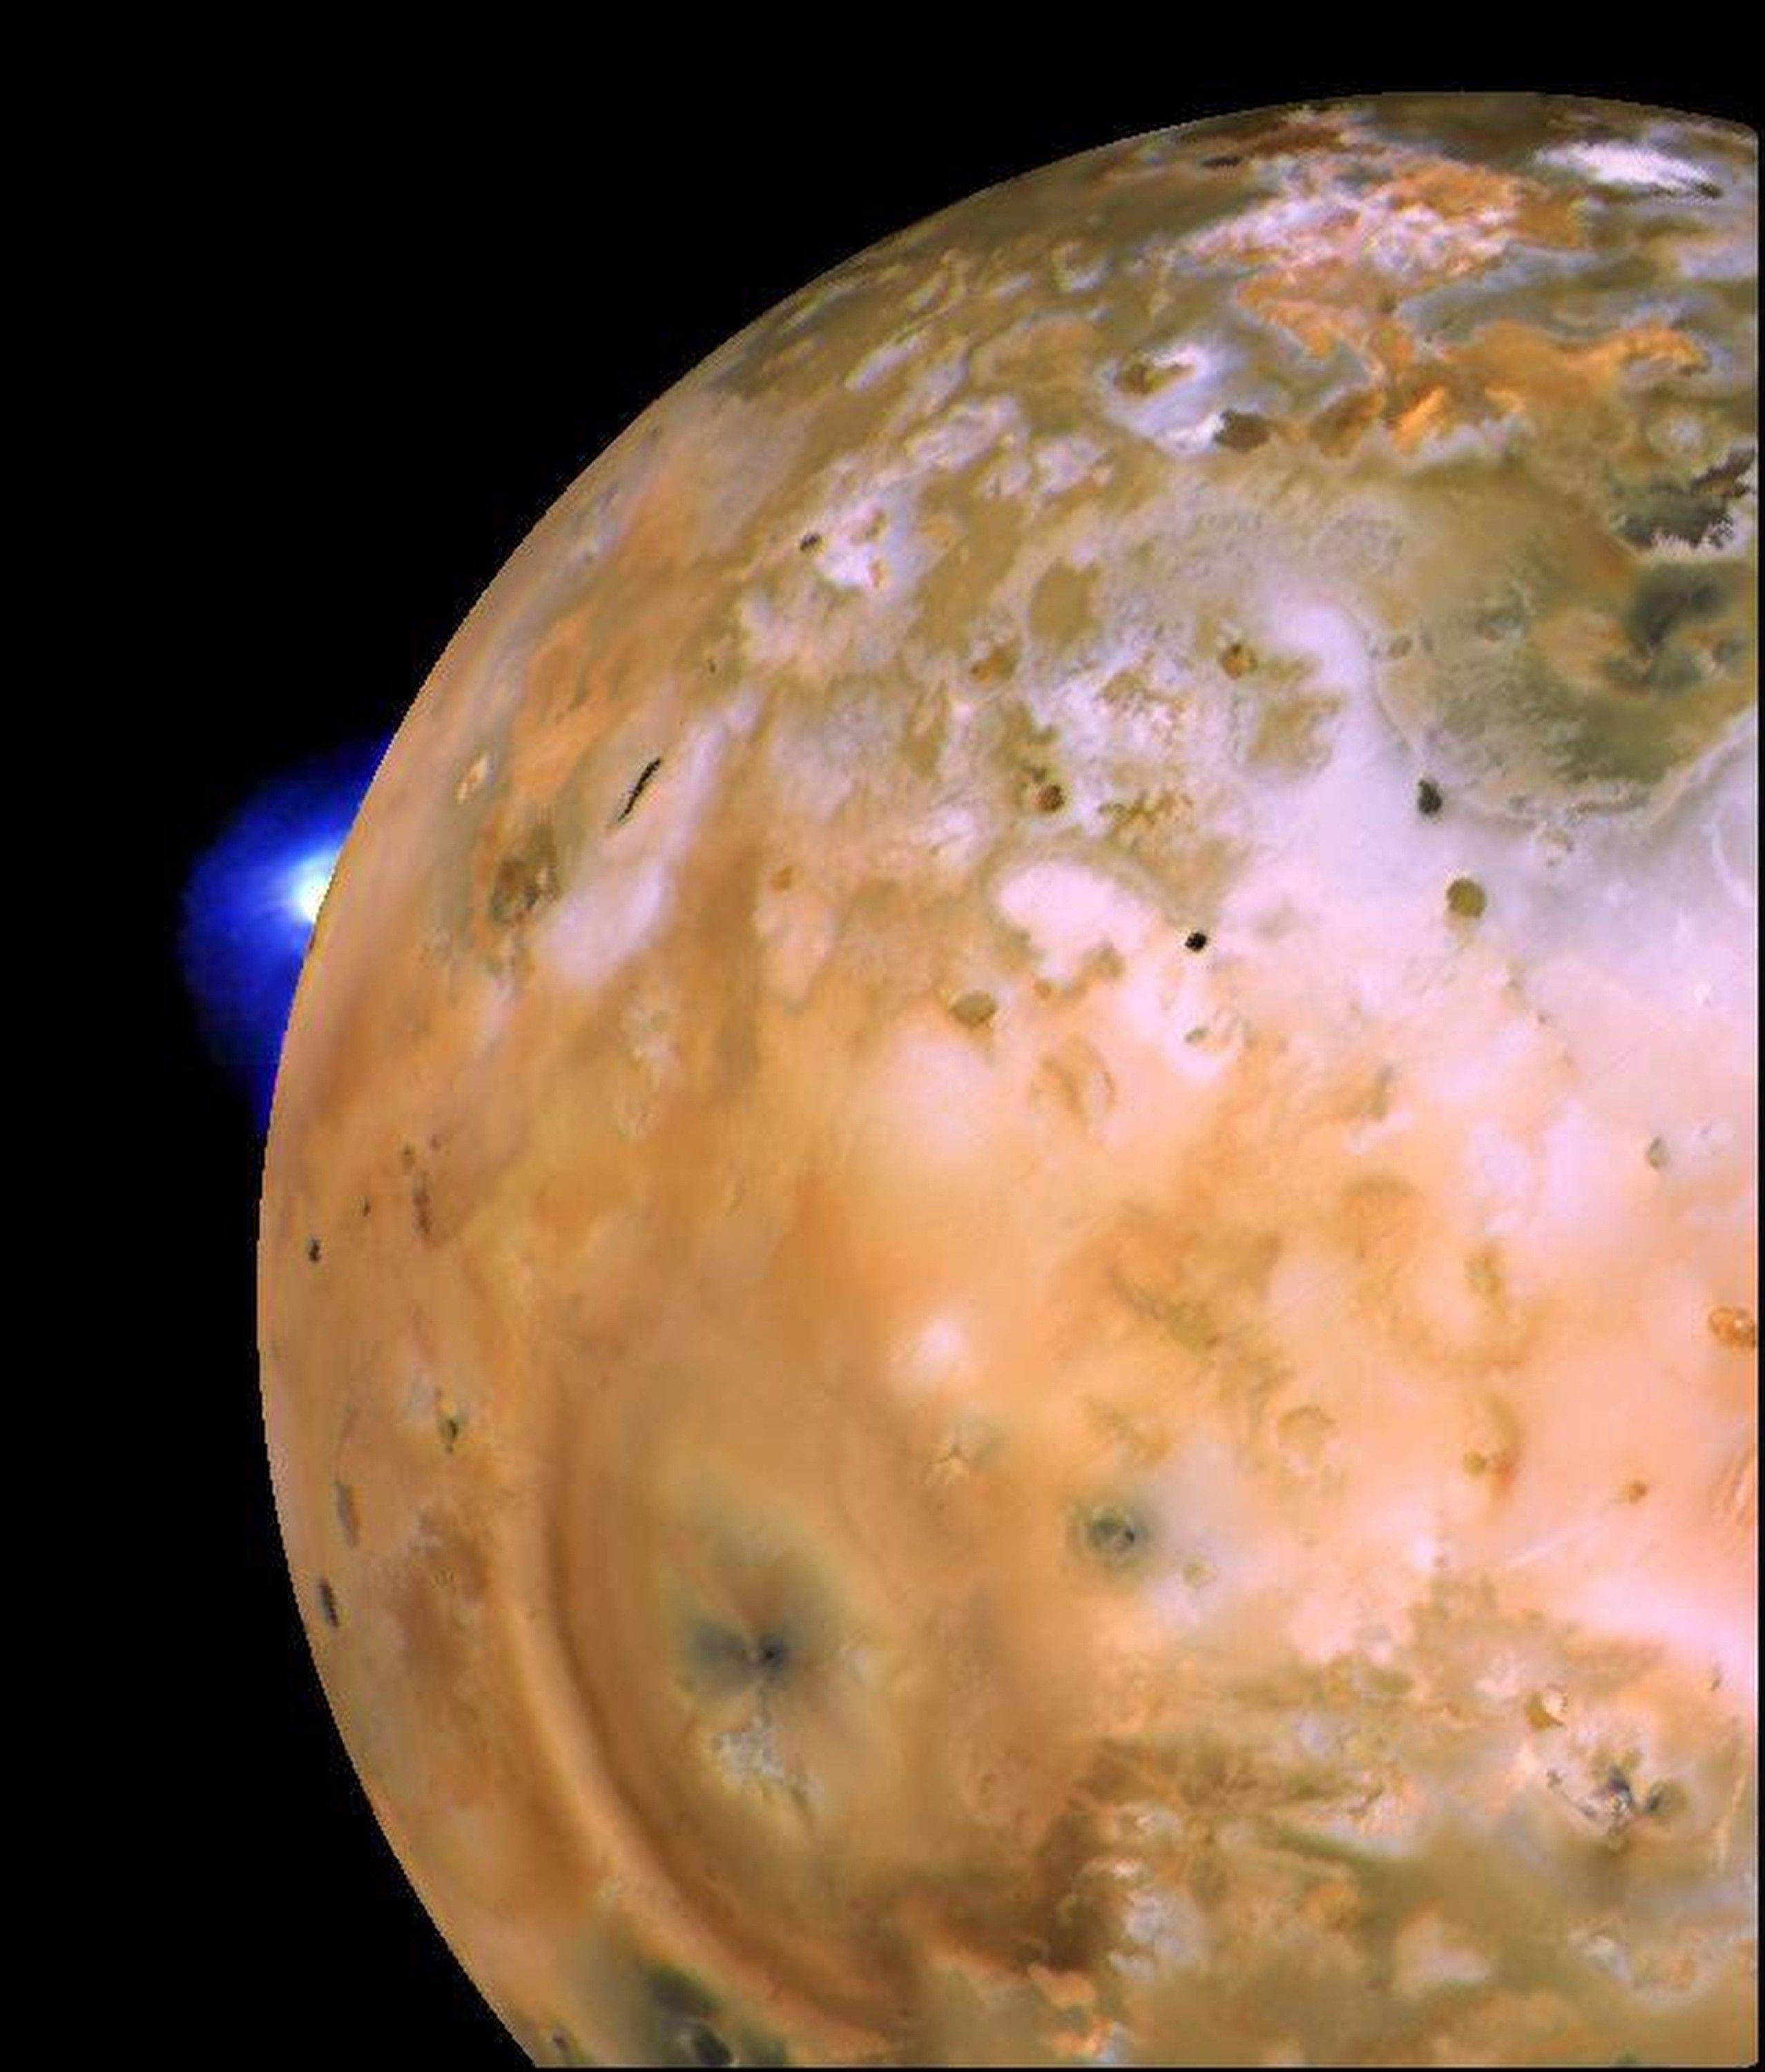 This image provided by NASA shows an image taken by the Voyager 1 spacecraft showing a volcanic plume on the Jupiter moon Io. Launched in 1977, the twin spacecraft are exploring the edge of the solar system. Voyager 1 is poised to cross into interstellar space.